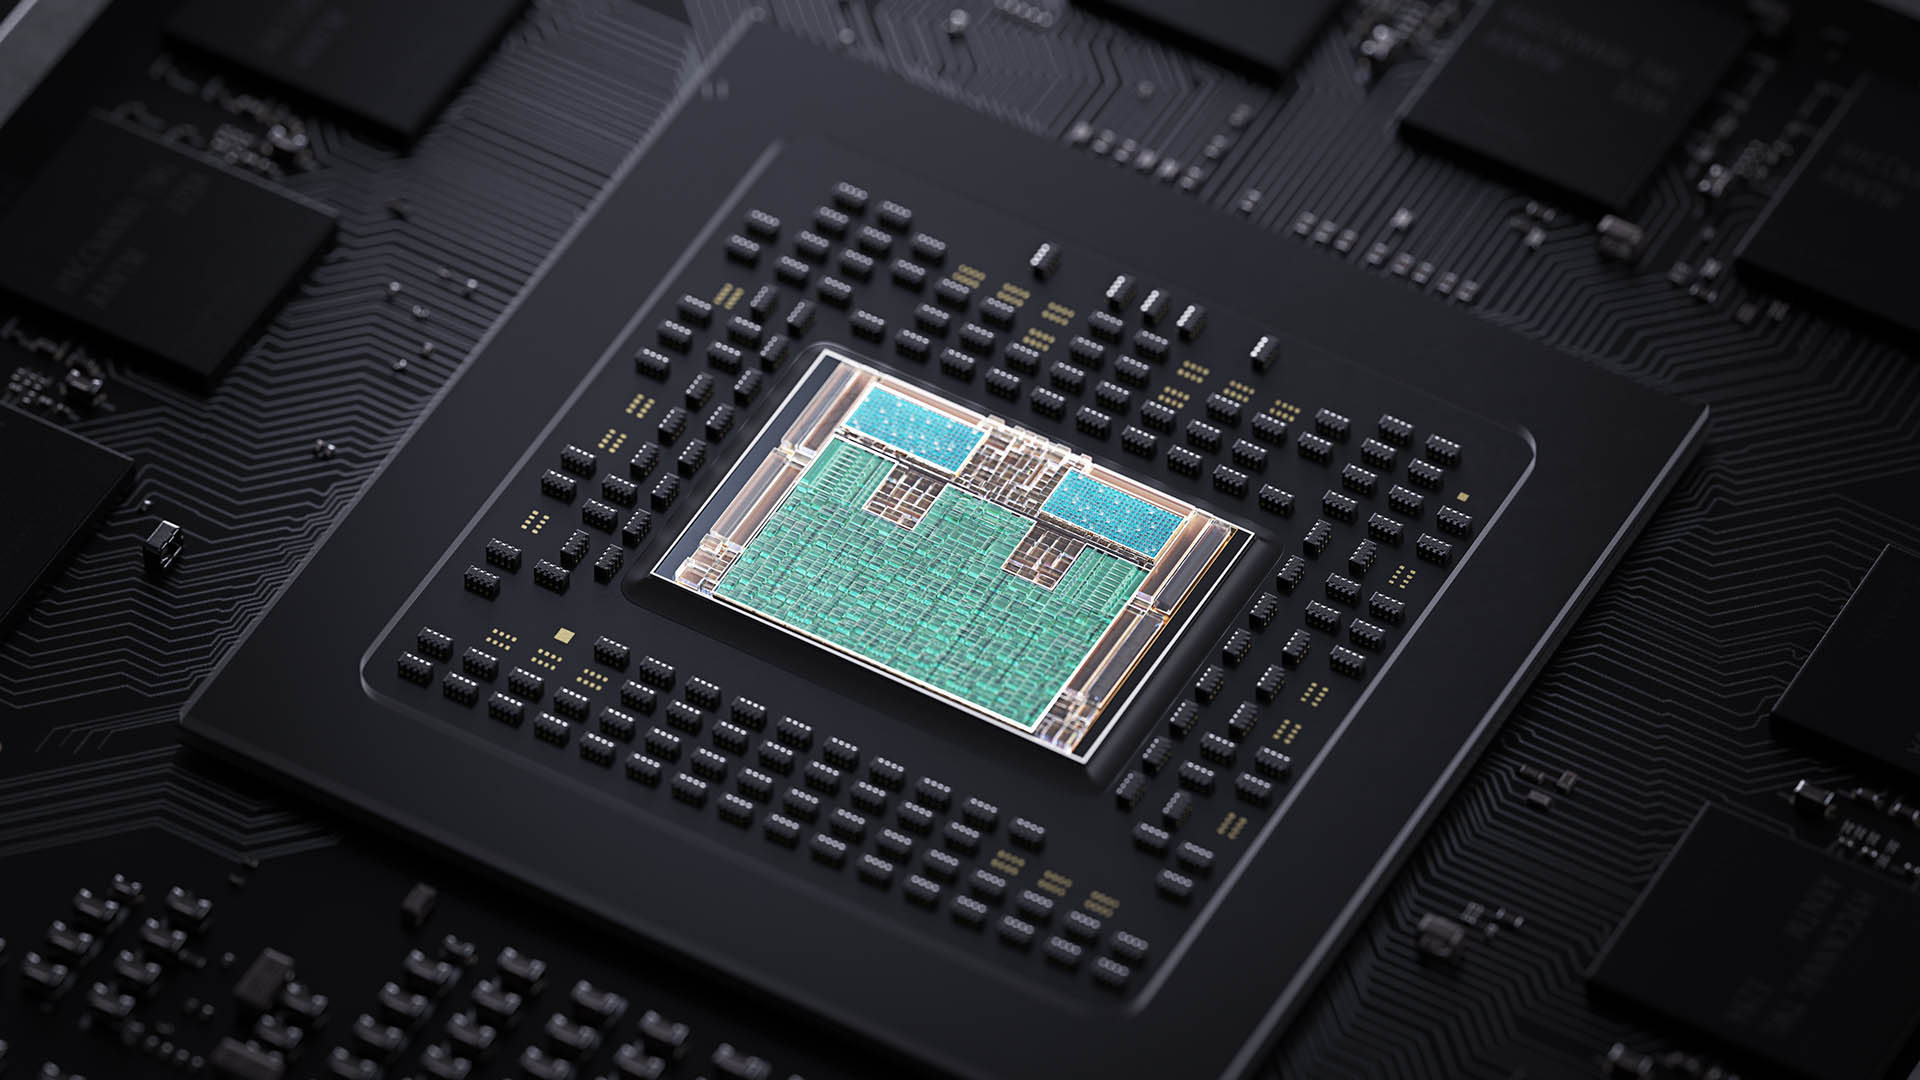 Ps5 Xbox Series X Specs The Next Gen Console Features Coming To Gaming Pcs Pcgamesn